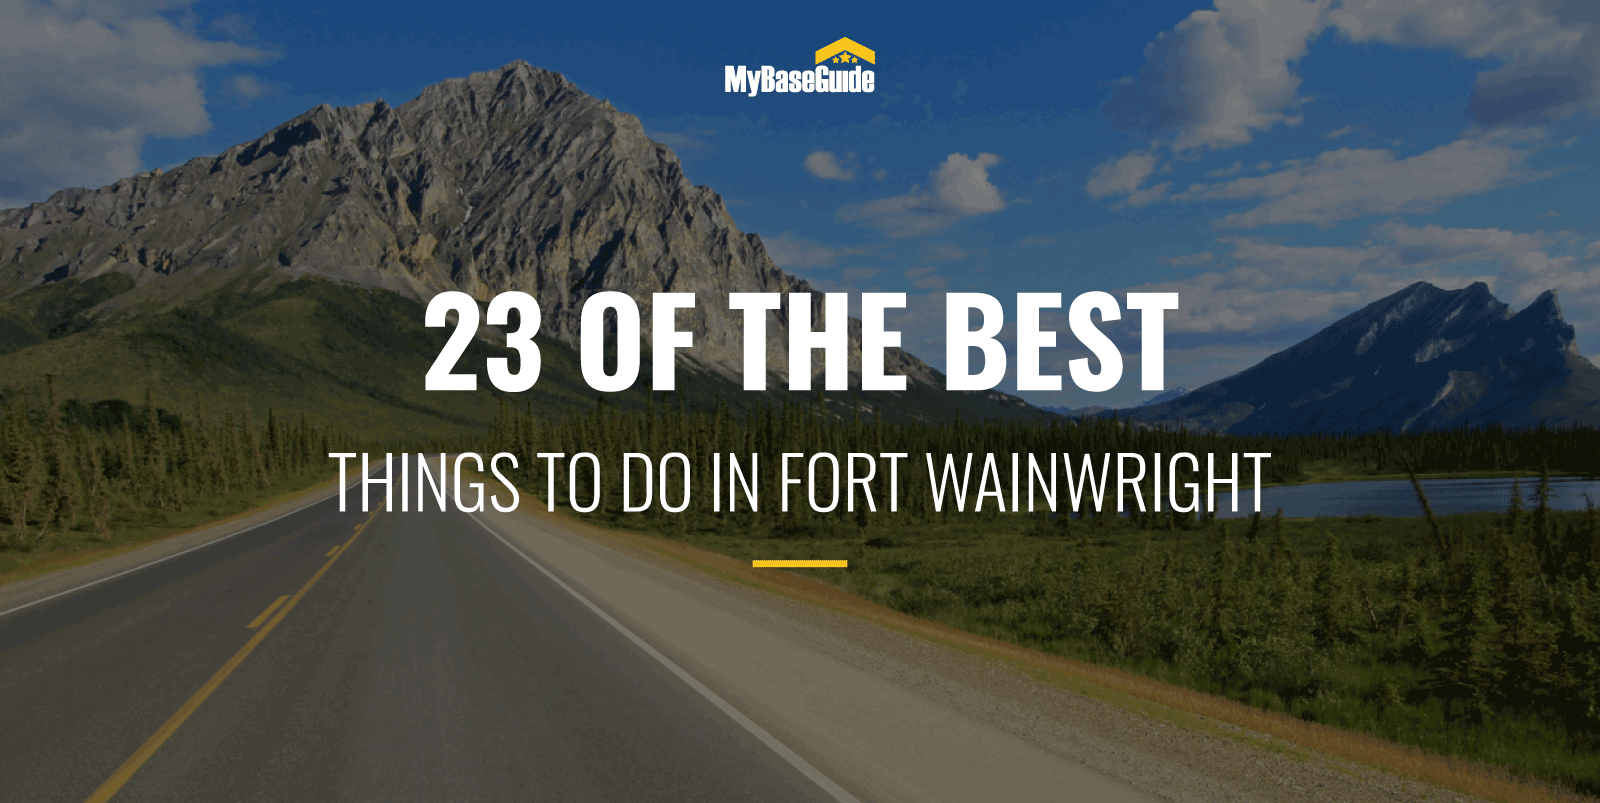 23 Of the Best Things to Do in Fort Wainwright, Alaska